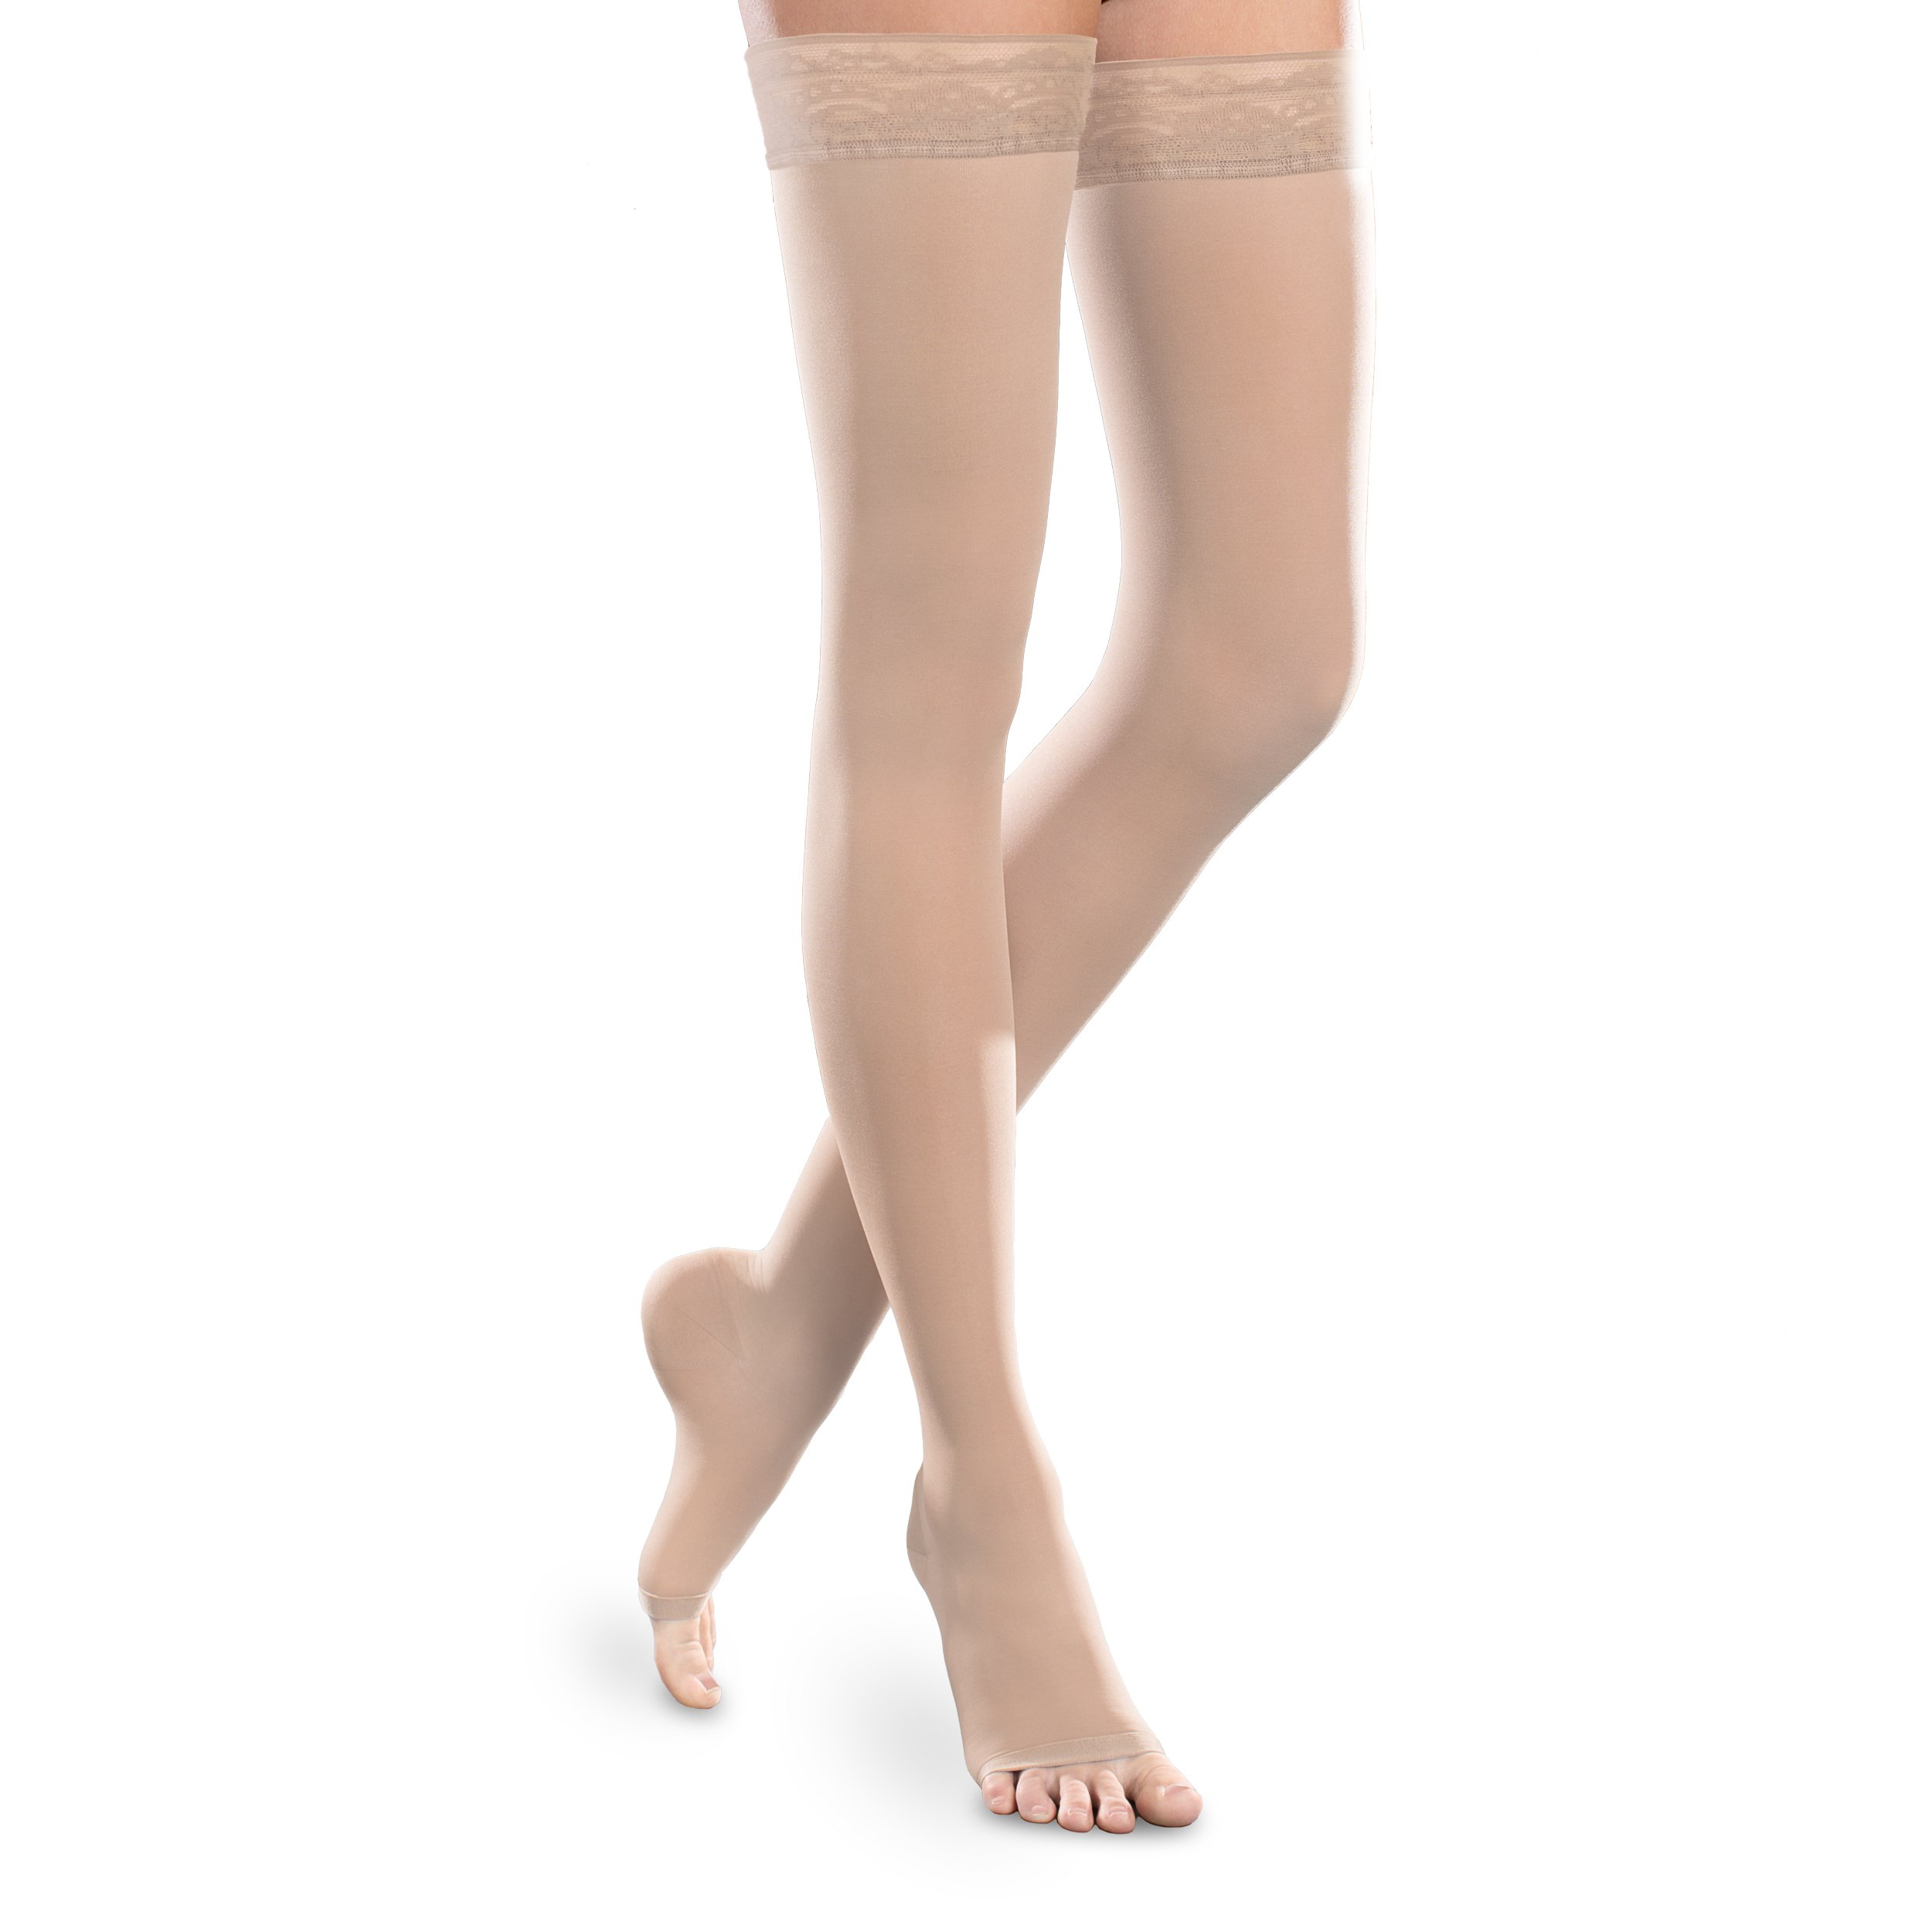 Sheer Ease Women's Open-Toe Thigh High Stockings - 20-30mmHg Moderate Compression Nylons (Natural, Small Long)